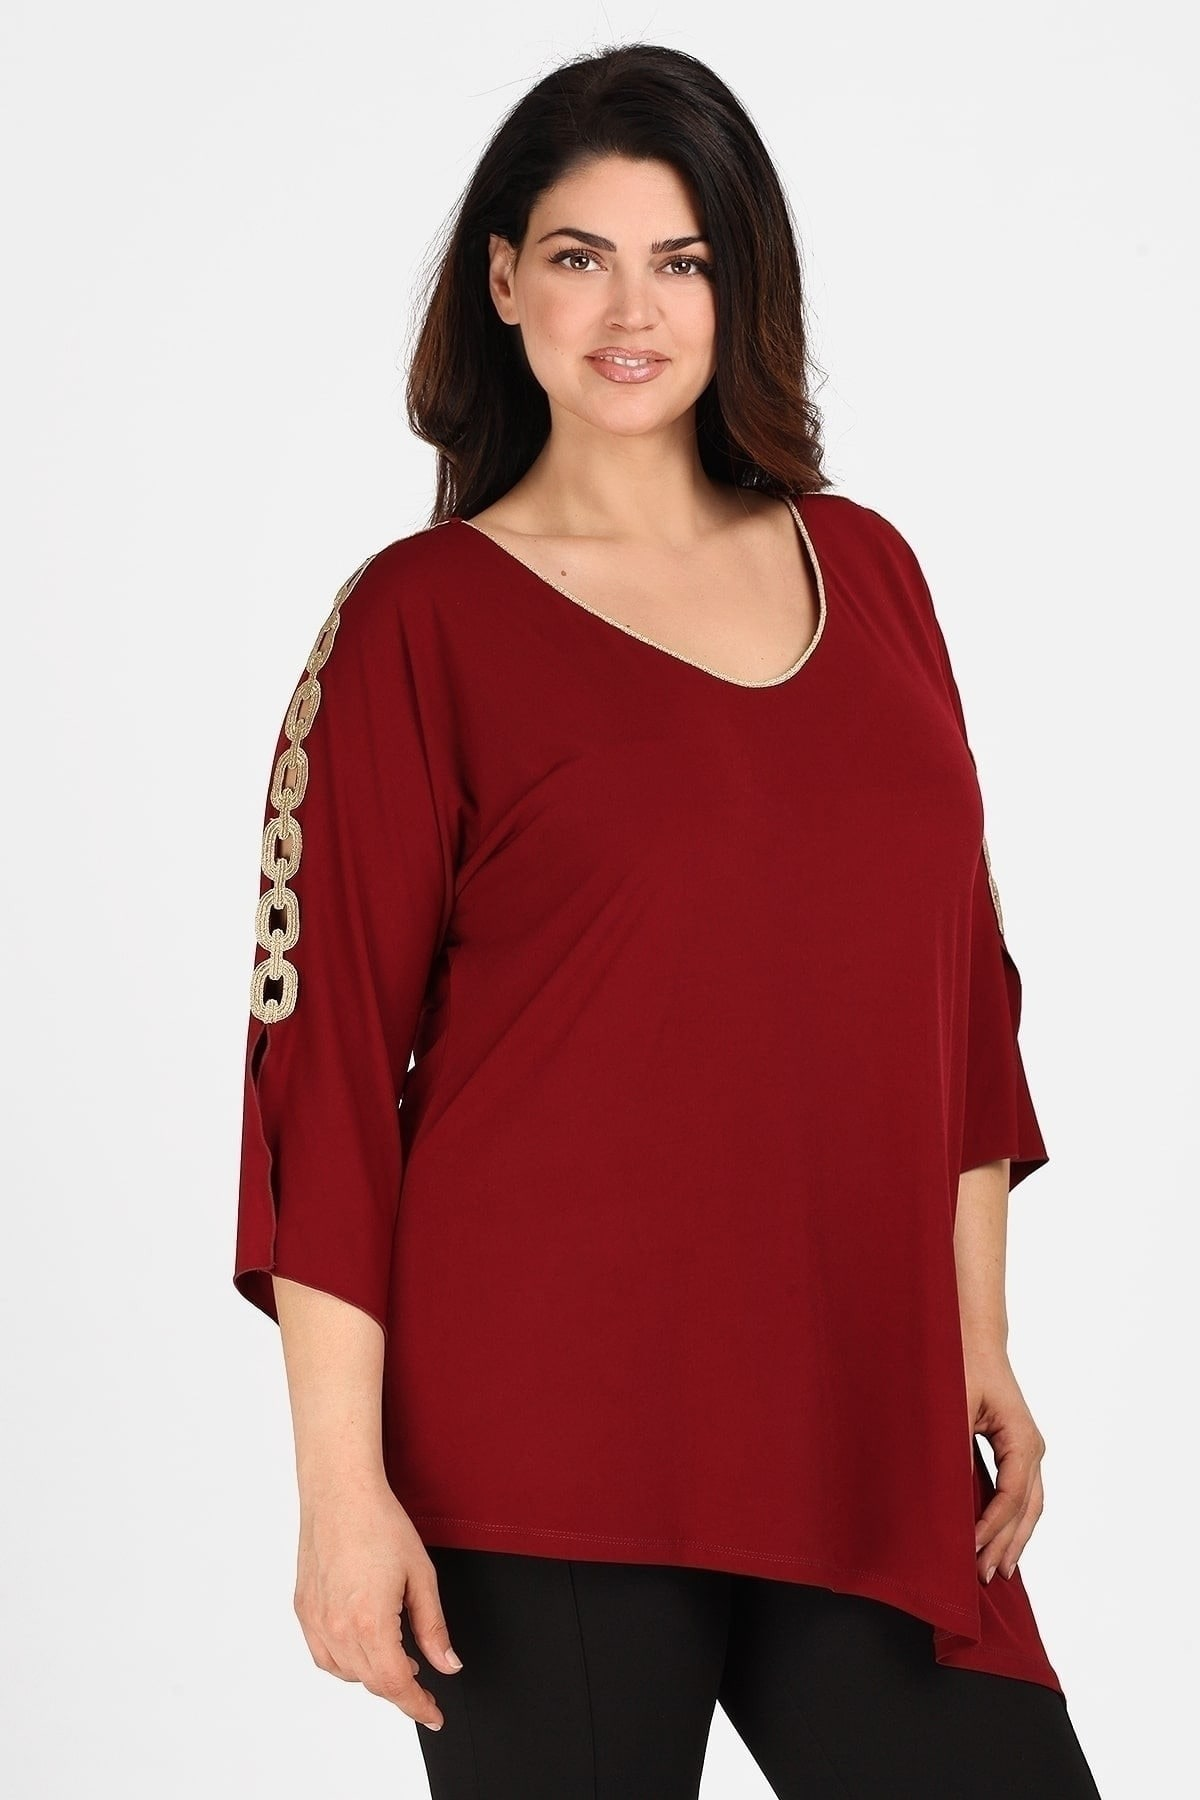 Evening blouse with golden stripe on the V